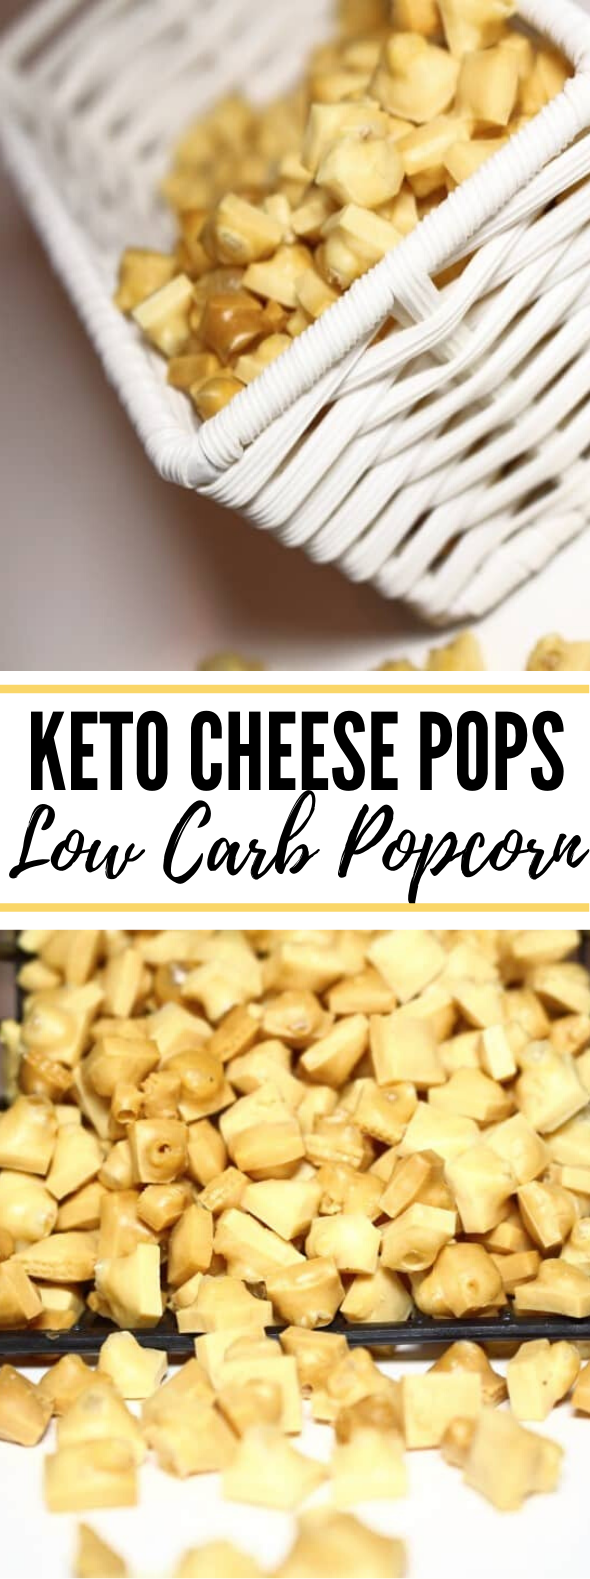 KETO CHEESE POPS – LOW CARB POPCORN #healthy #diet #ketogenic #lowcarb #cheese